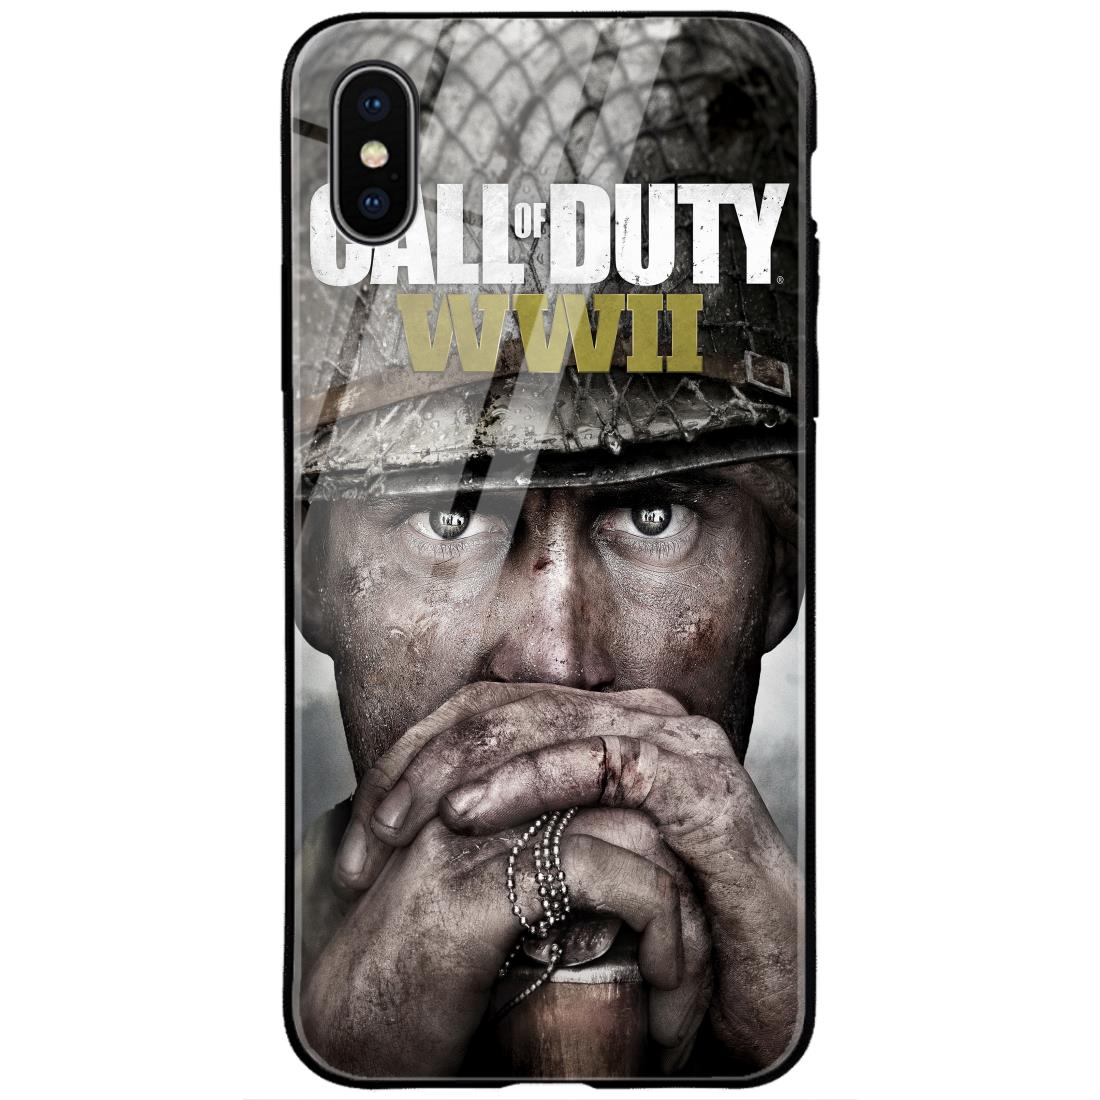 Phone Cases,Apple Phone Cases,iPhone Xs Max Glass Case,Gaming